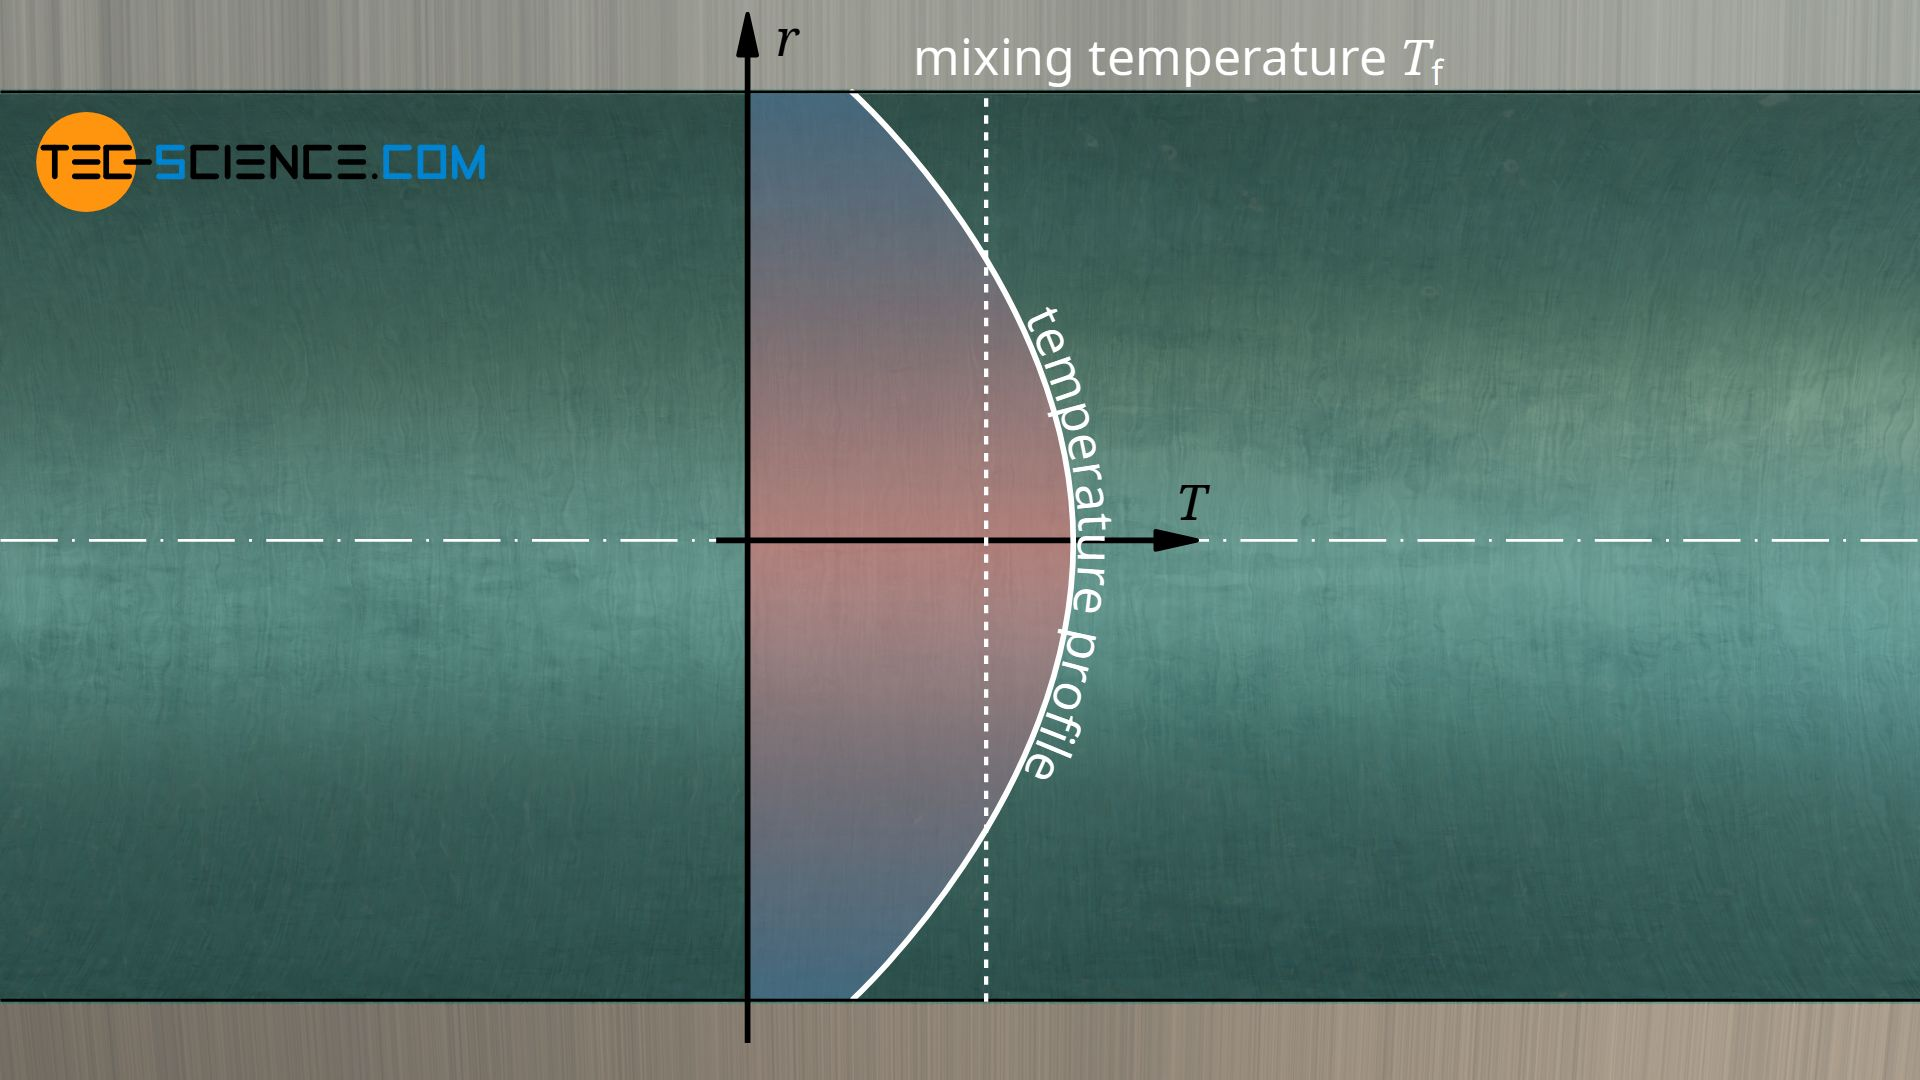 Reference temperature for a spatially restricted flow (pipe)